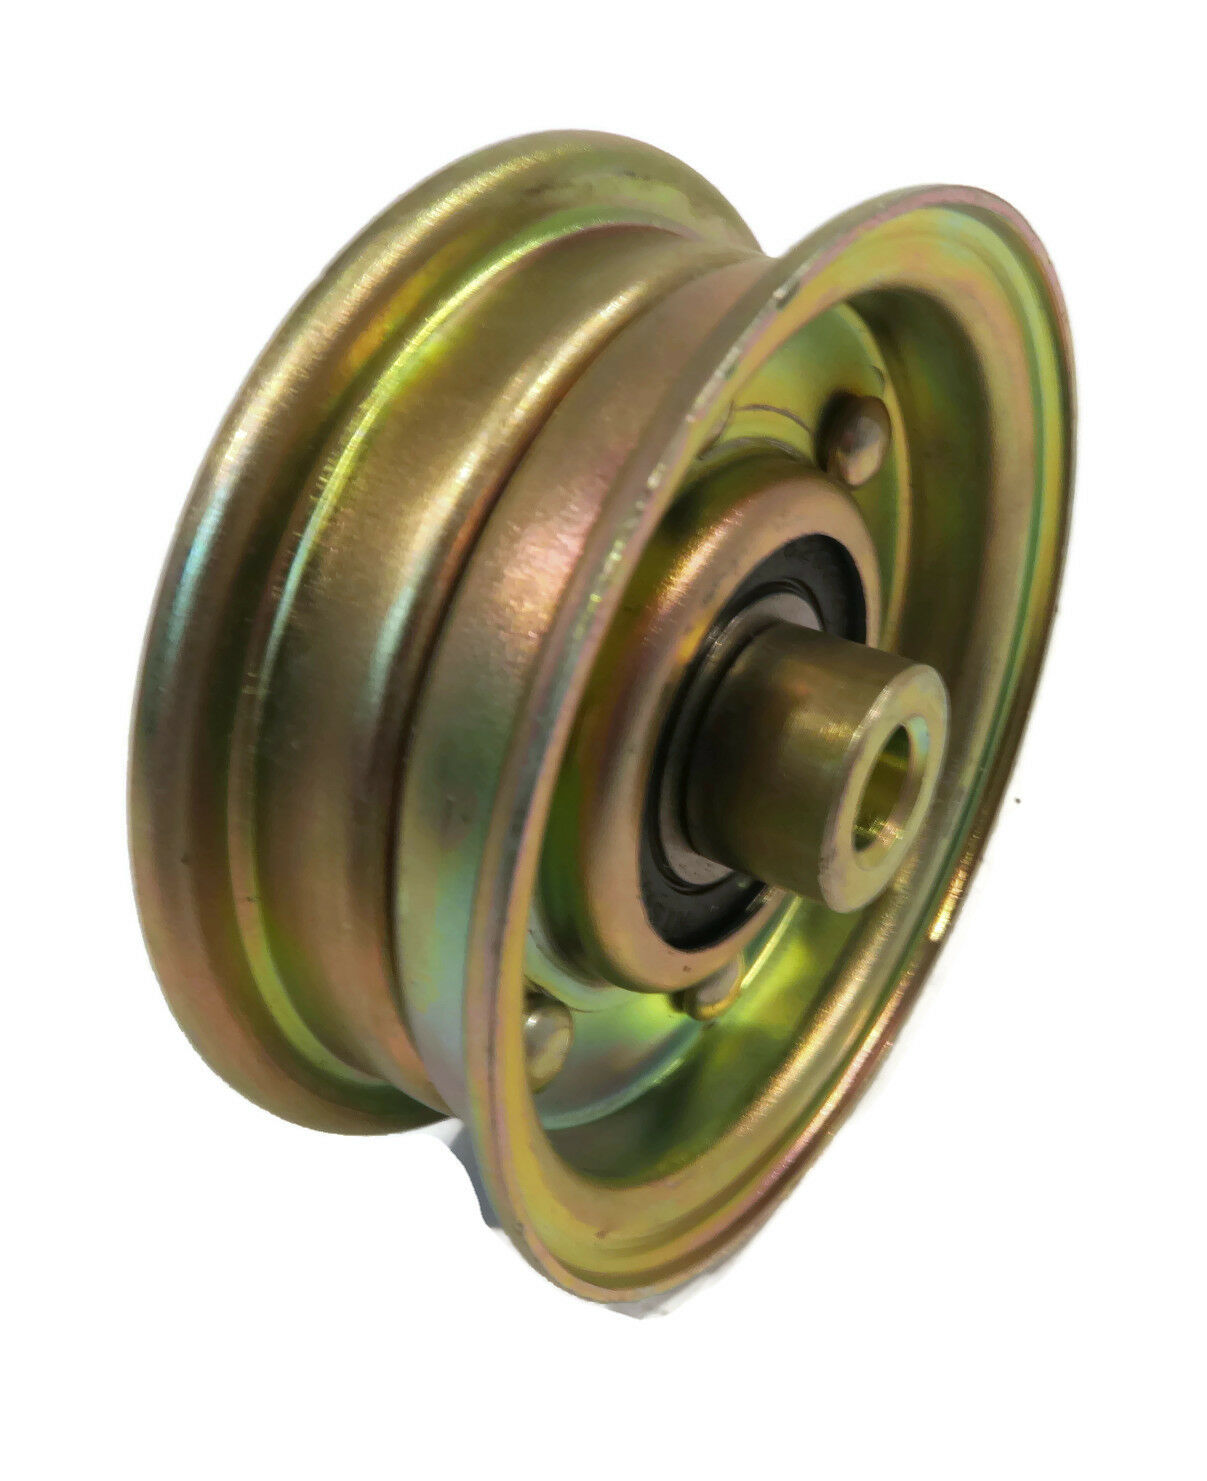 FLAT IDLER PULLEY for Stens 280-044 Rotary 12891 2188 Lawn Mower ...